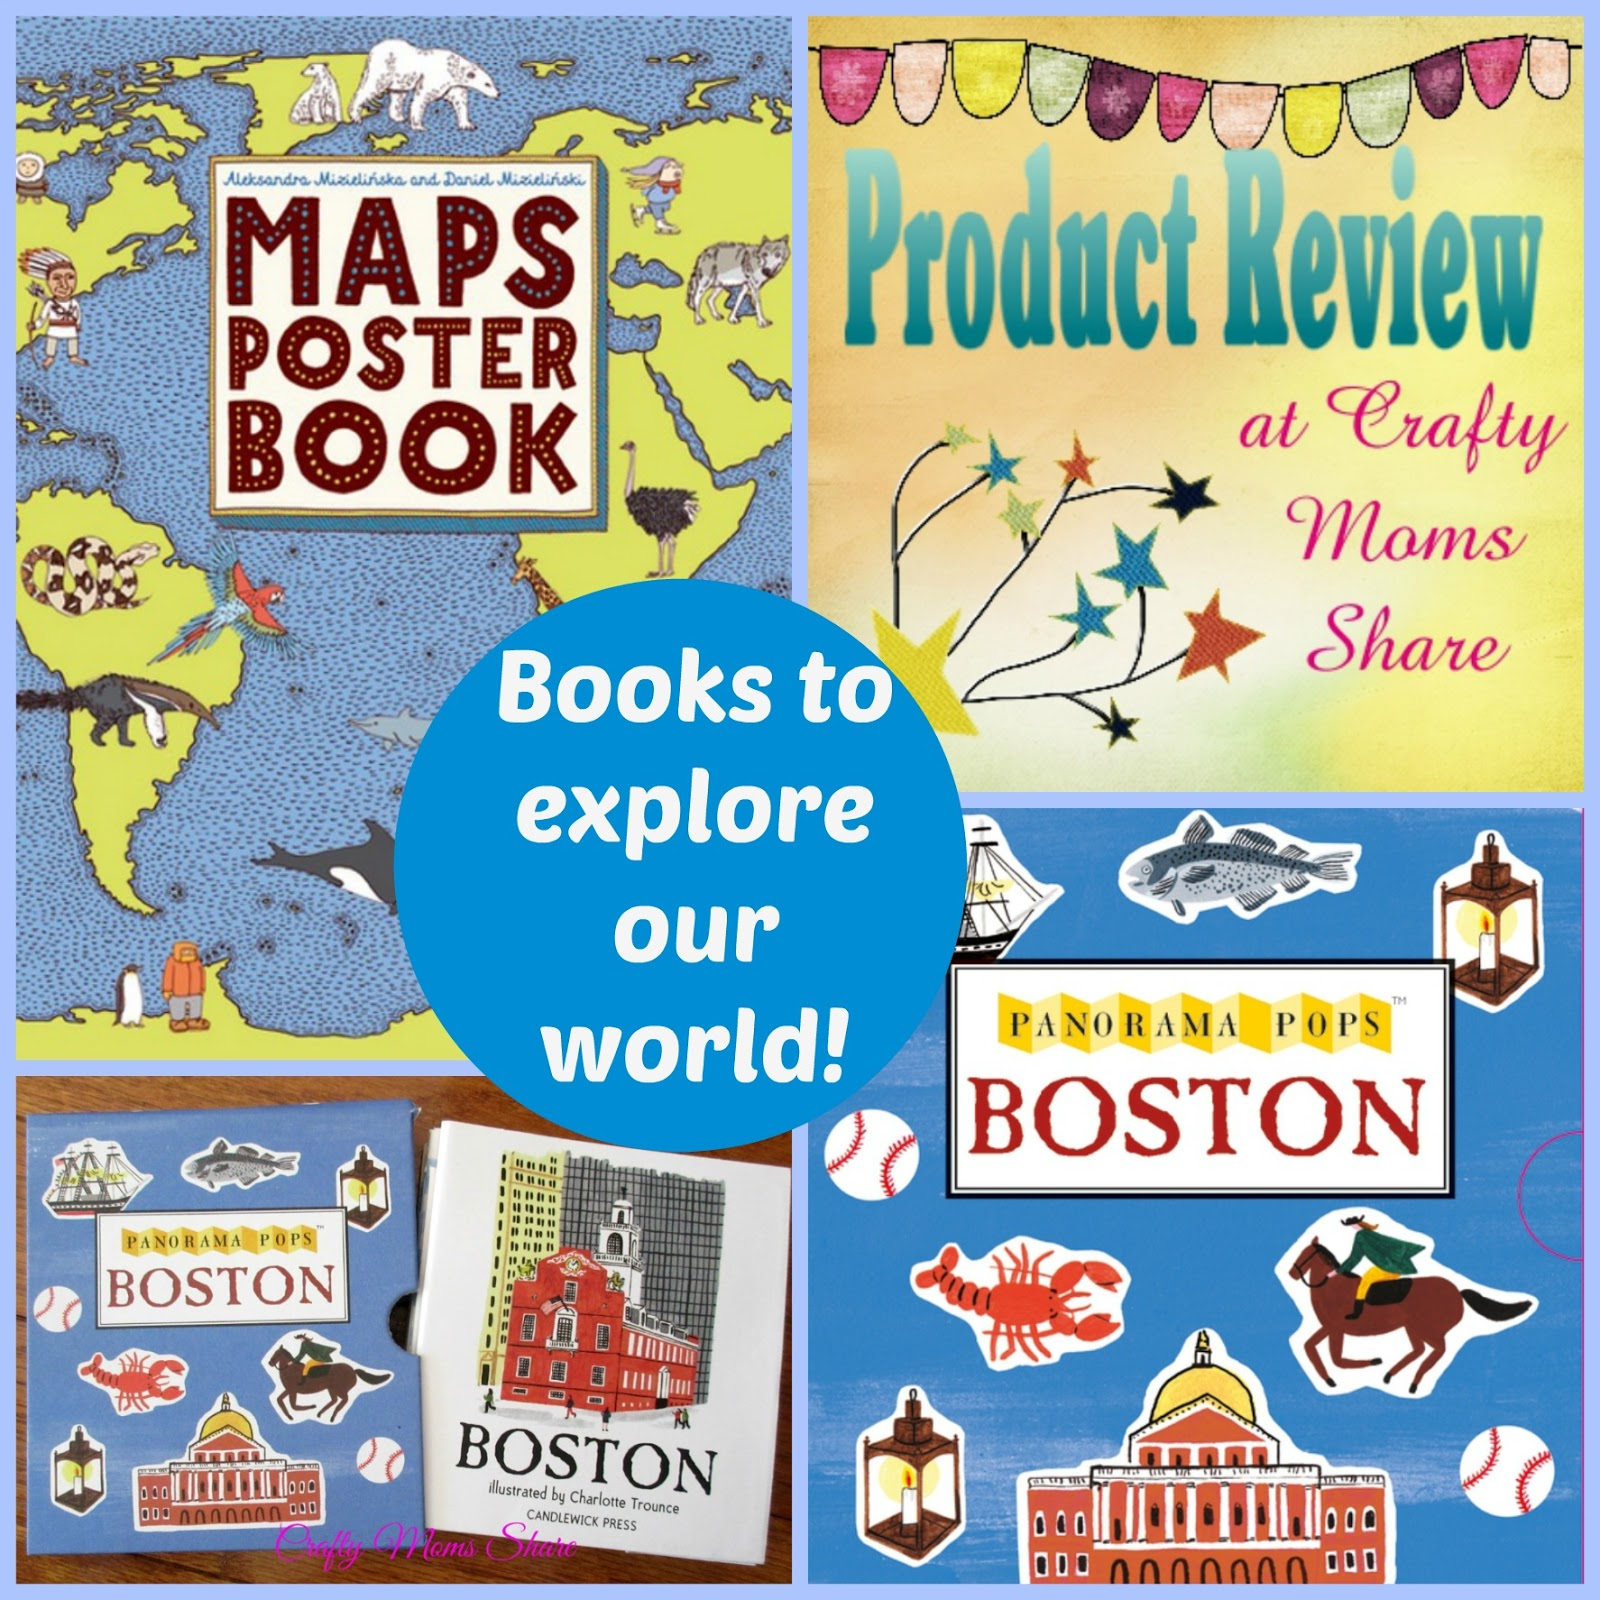 Crafty moms share books to explore our world maps poster book books to explore our world maps poster book and panorama pops boston book reviews gumiabroncs Images